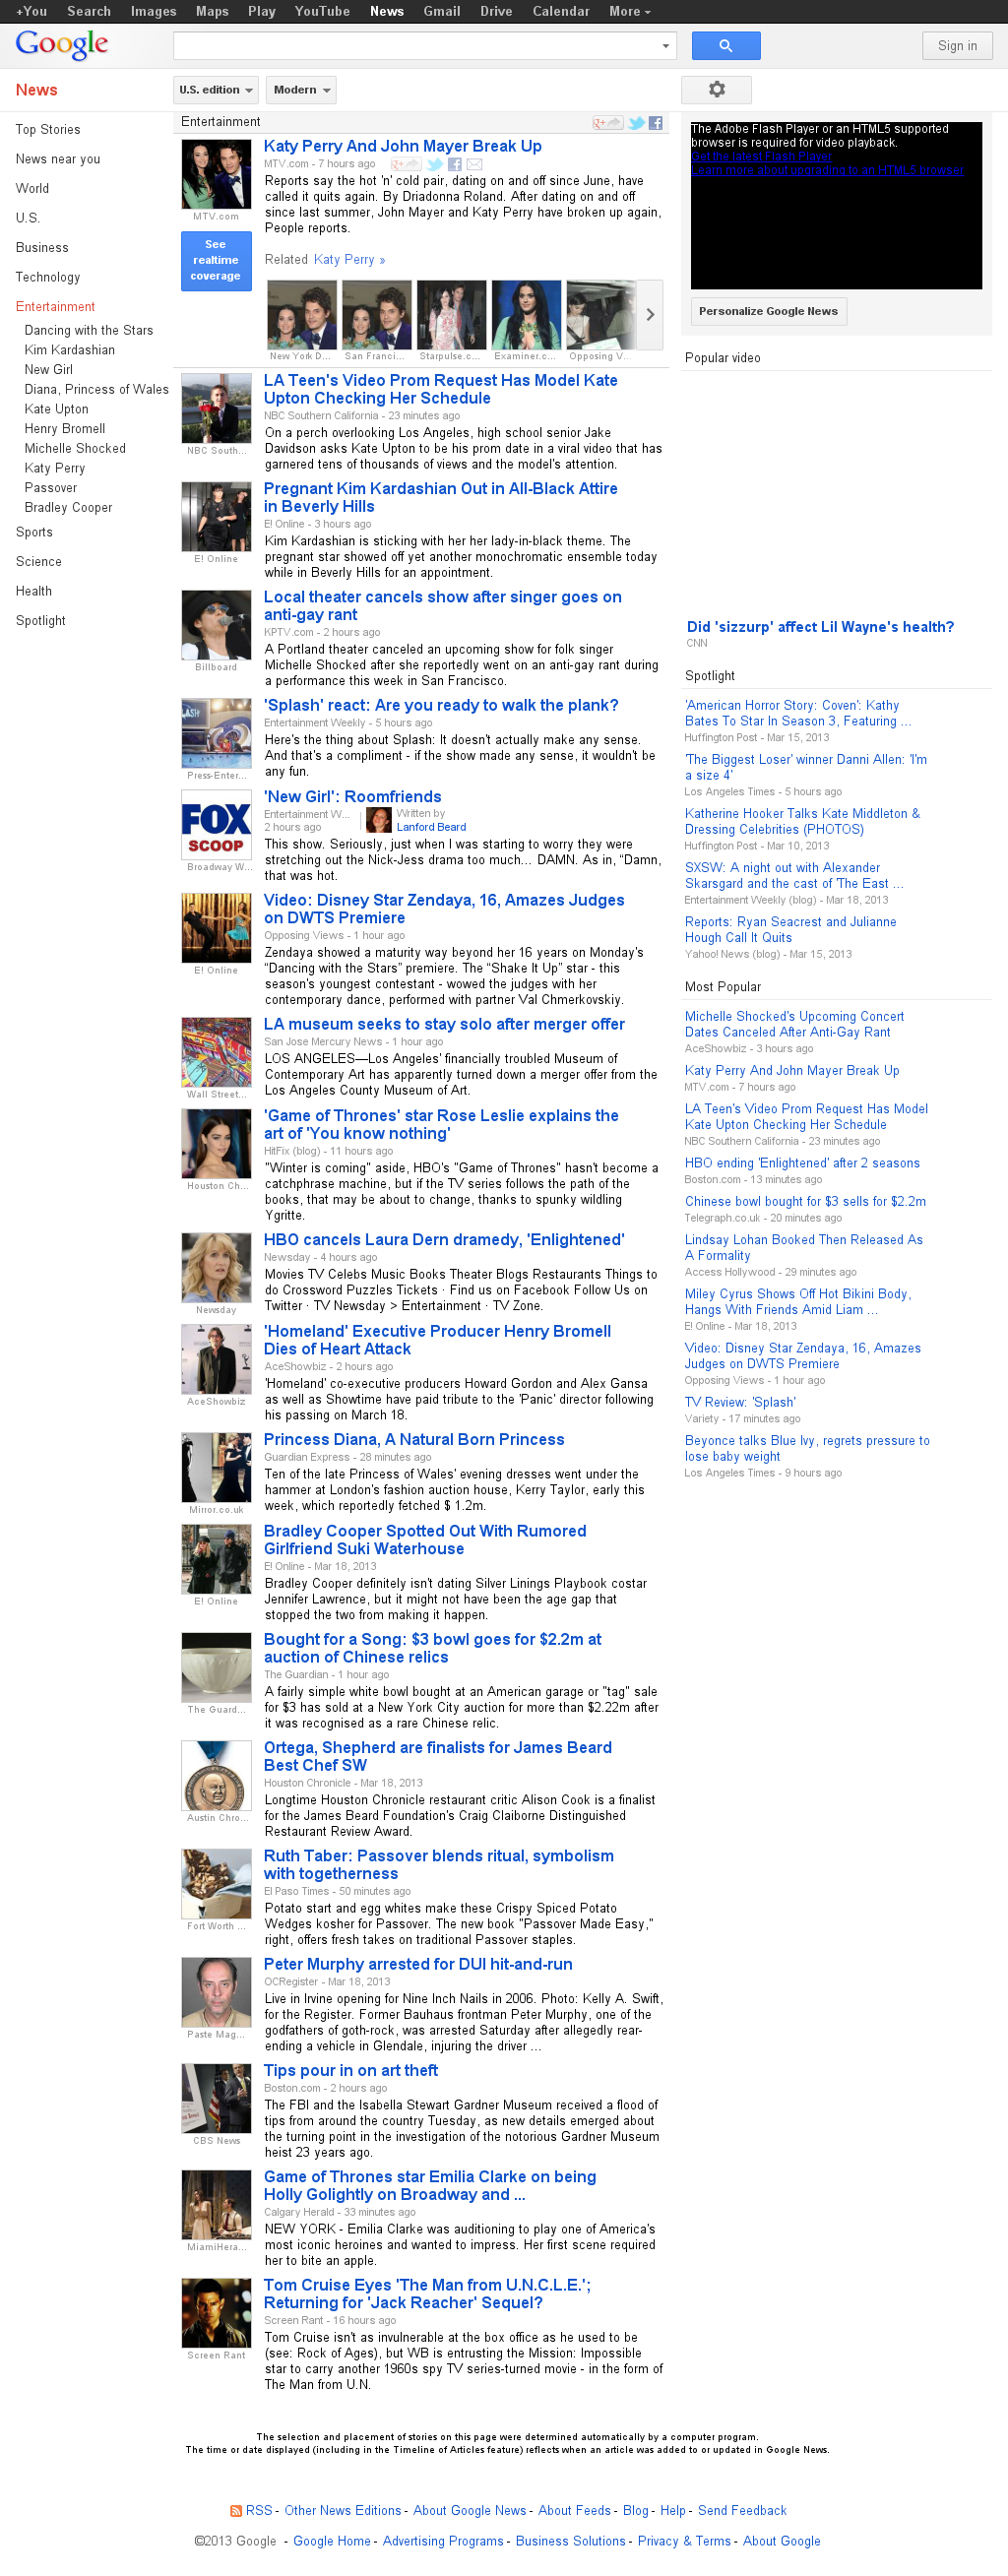 Google News: Entertainment at Wednesday March 20, 2013, 7:09 a.m. UTC